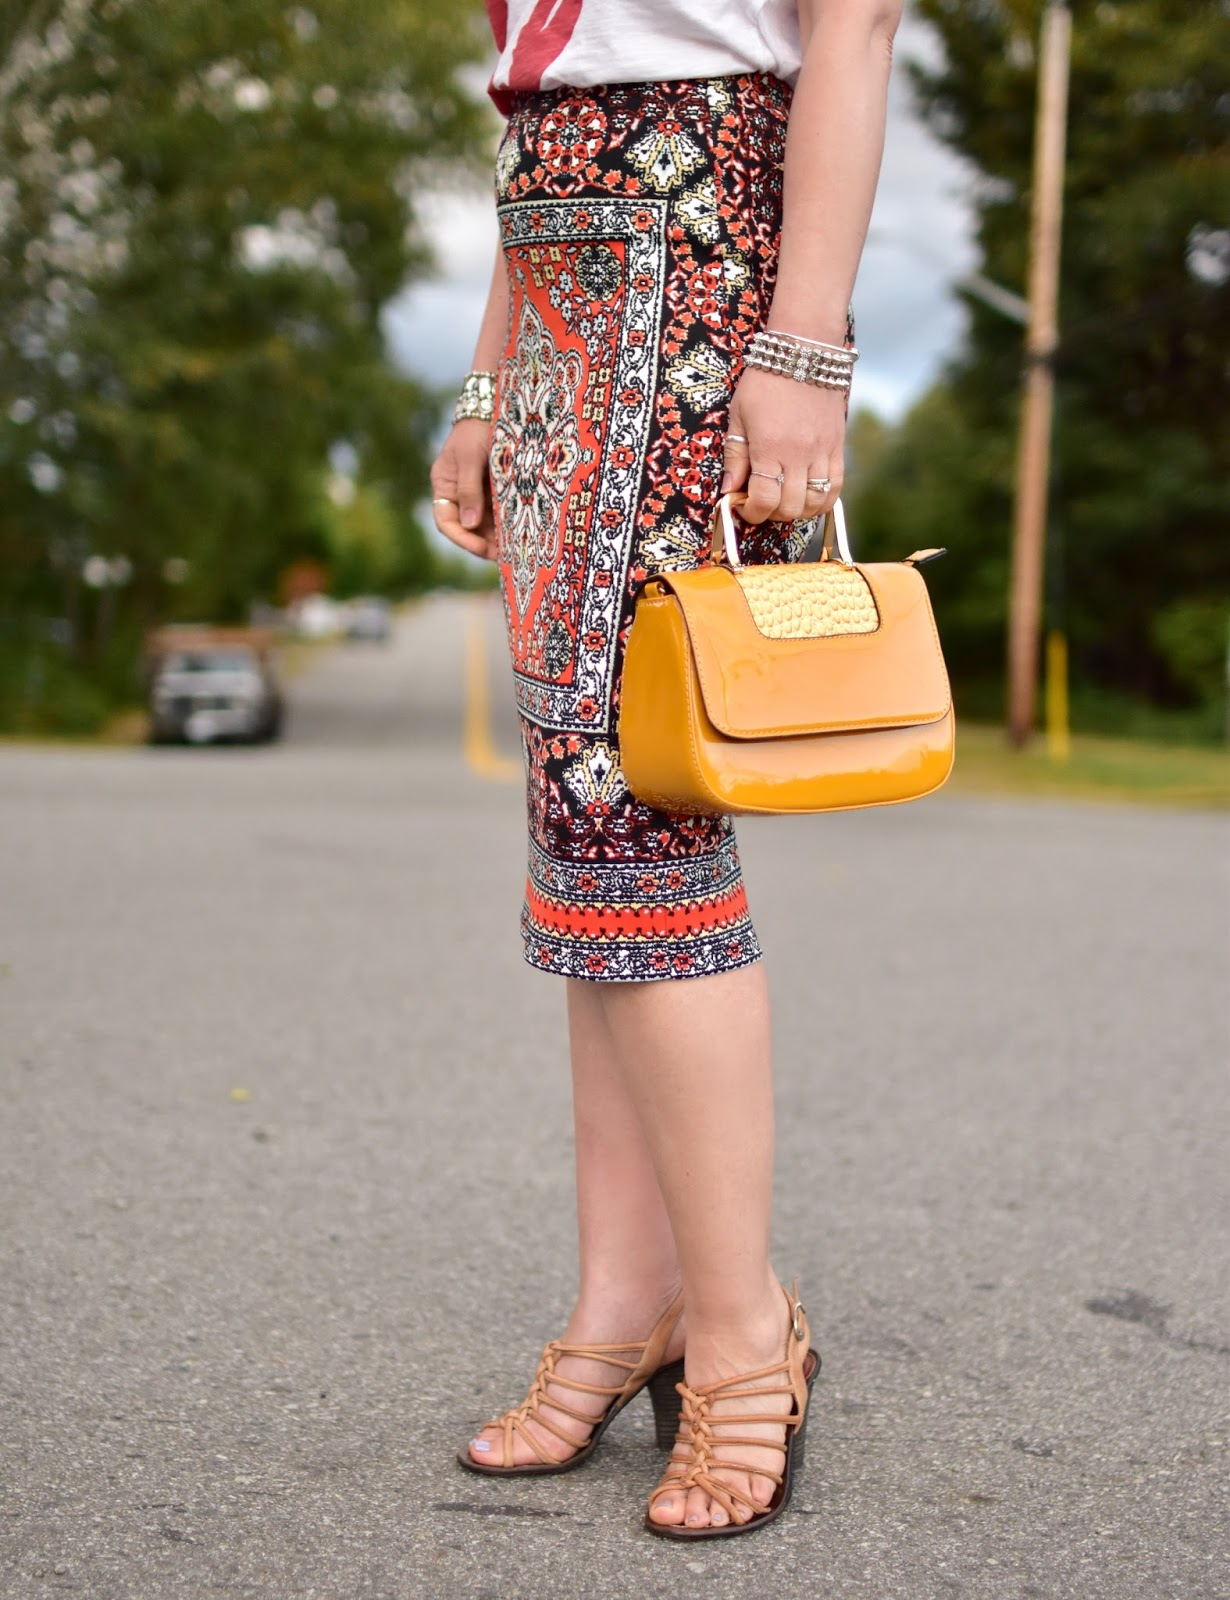 patterned pencil skirt, strappy nude sandals, and yellow patent mini bag